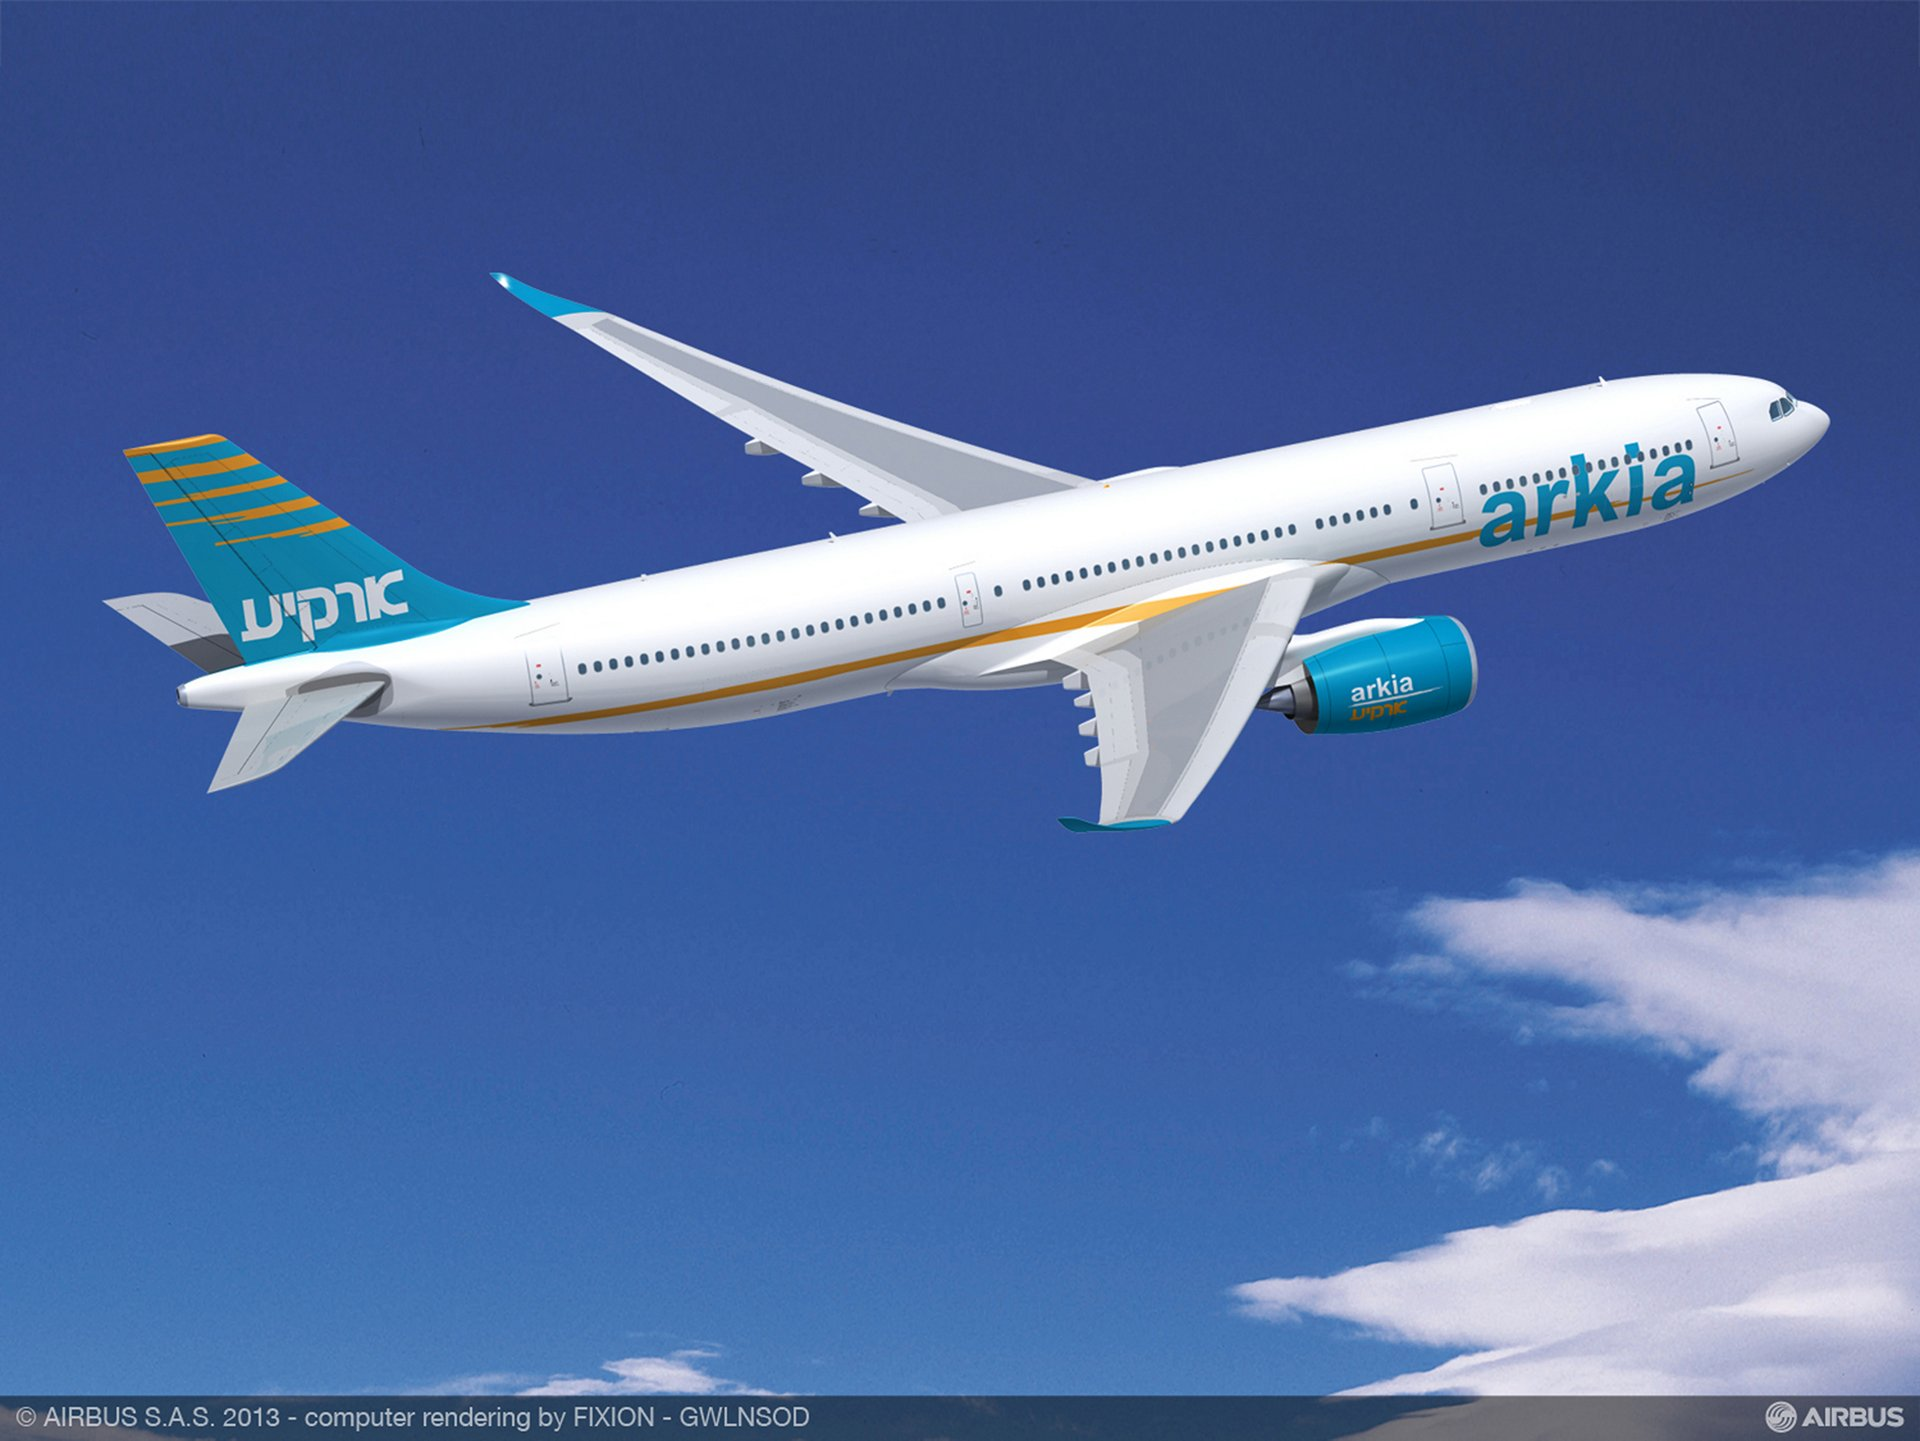 Farnborough Airshow_Day 1_ARKIA Israeli Airlines A330-900neo 2